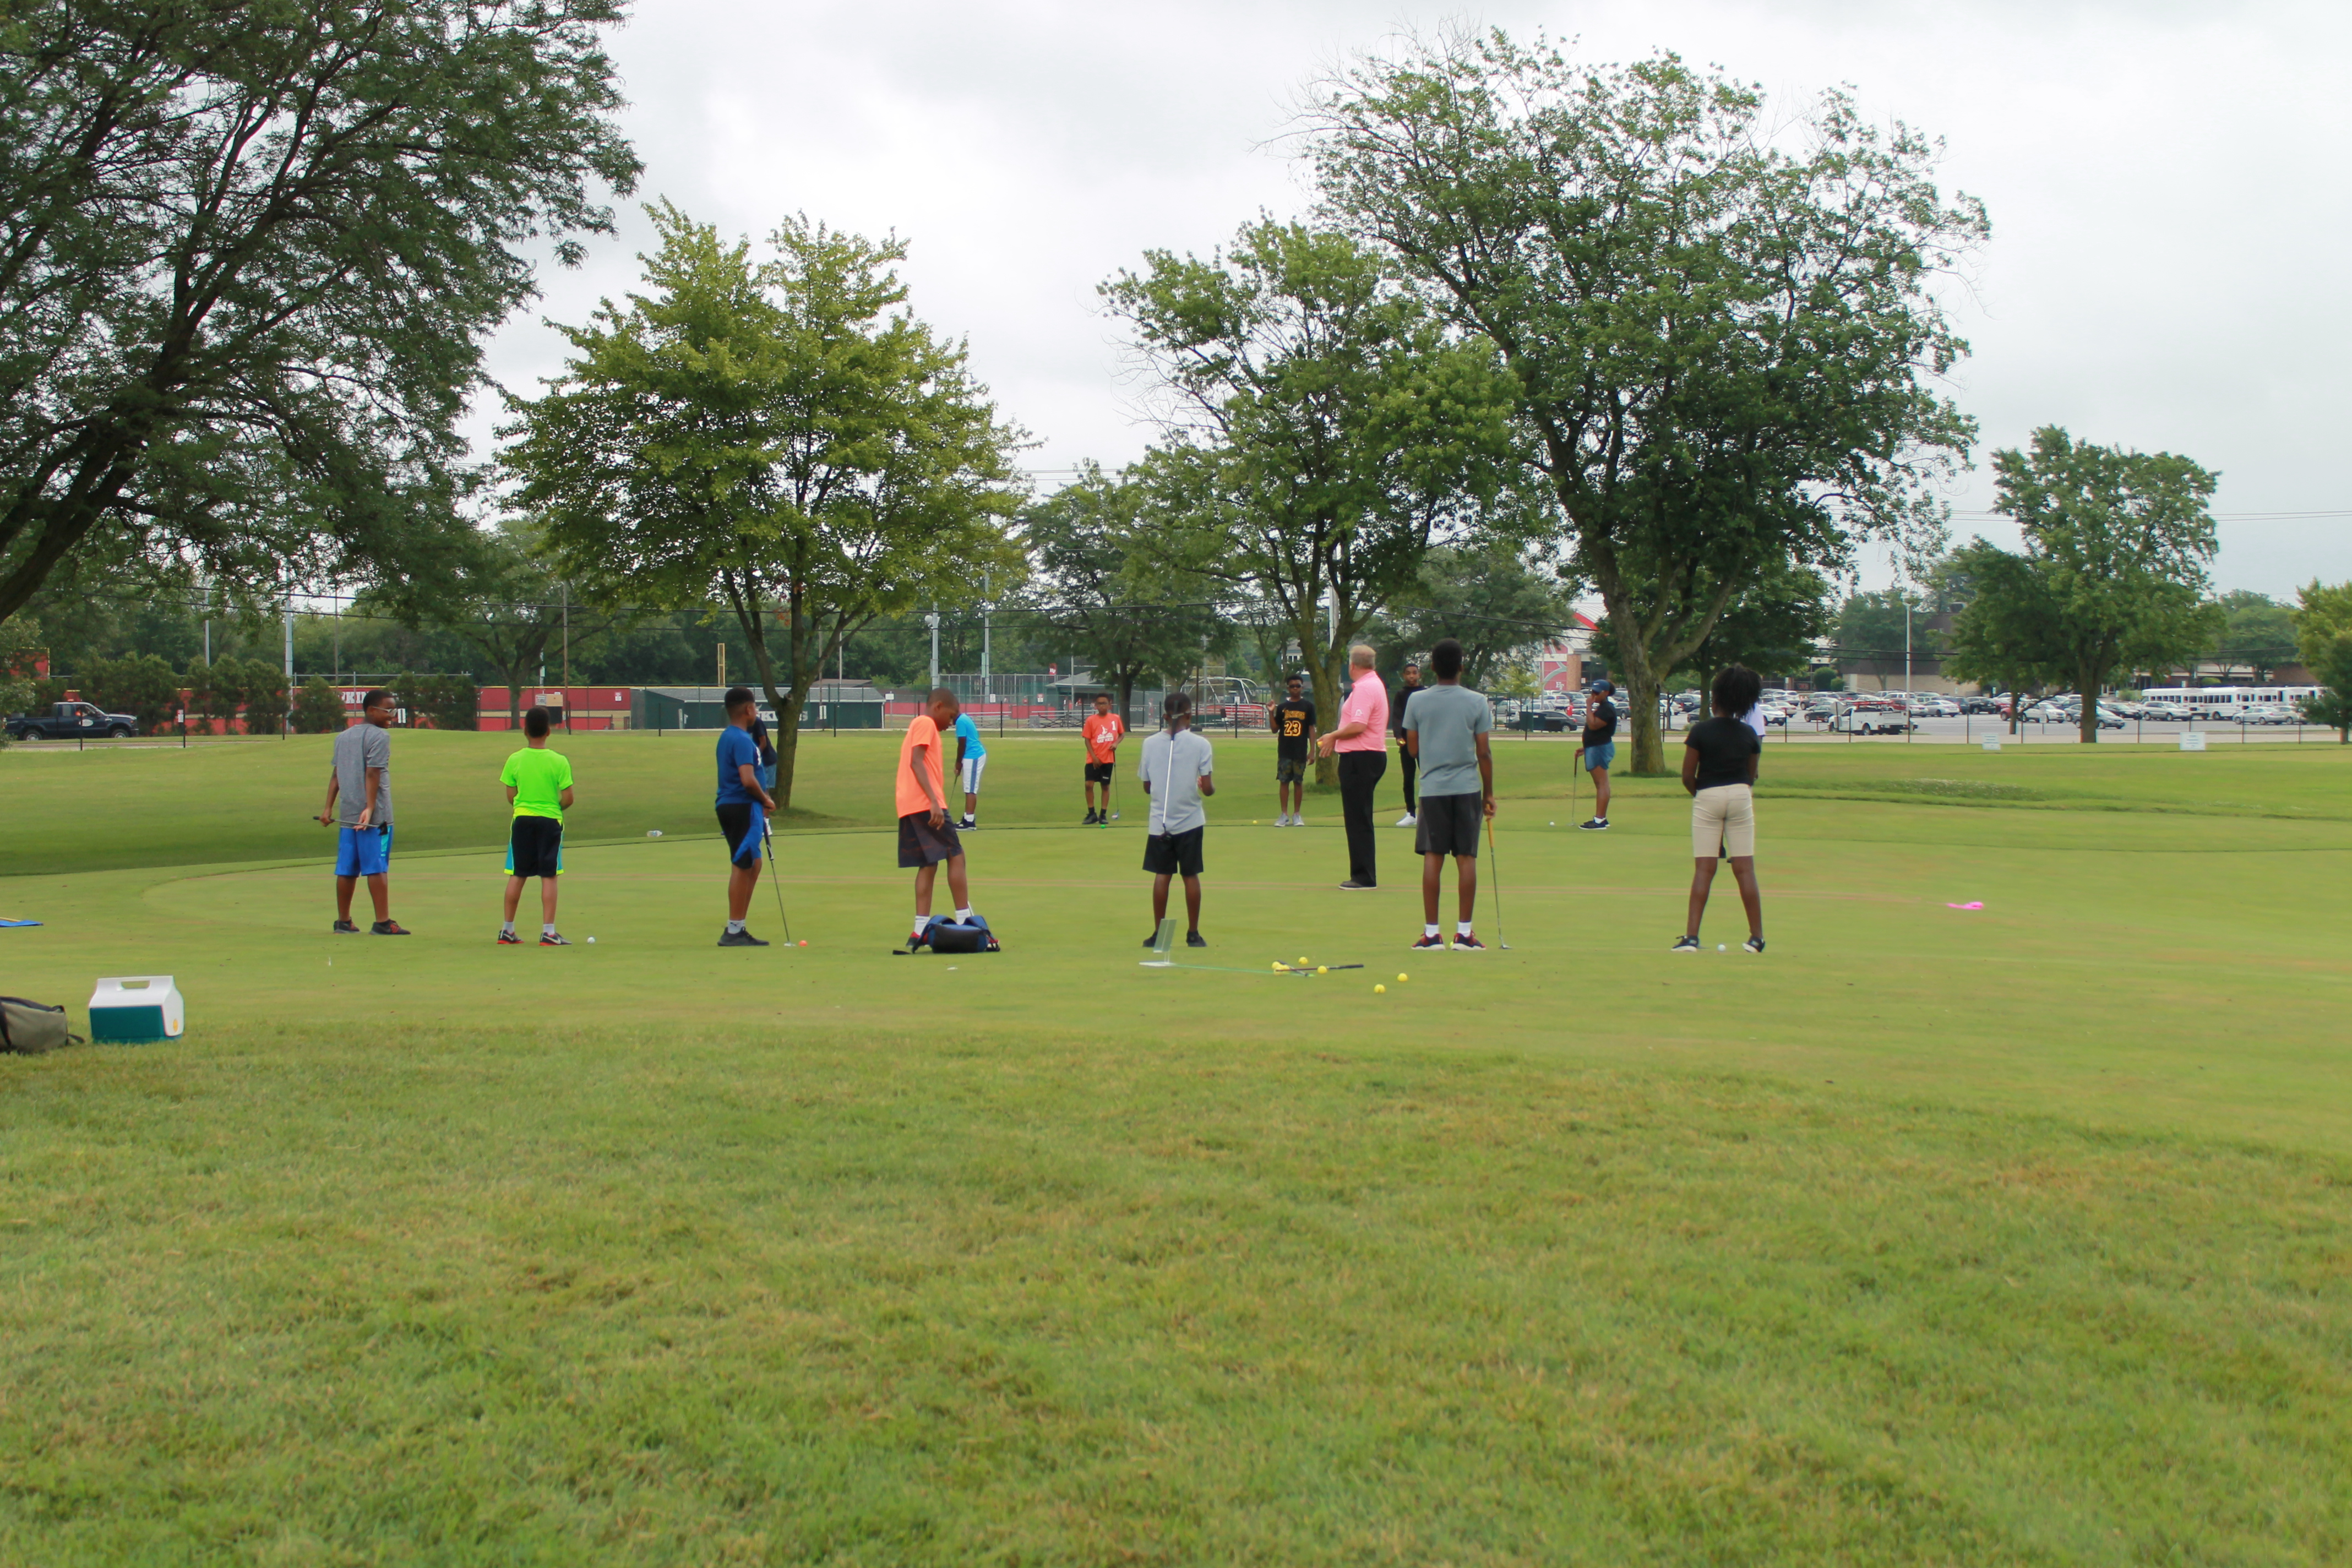 Junior golfers learning the game of golf from Coyote Run's golf pro.